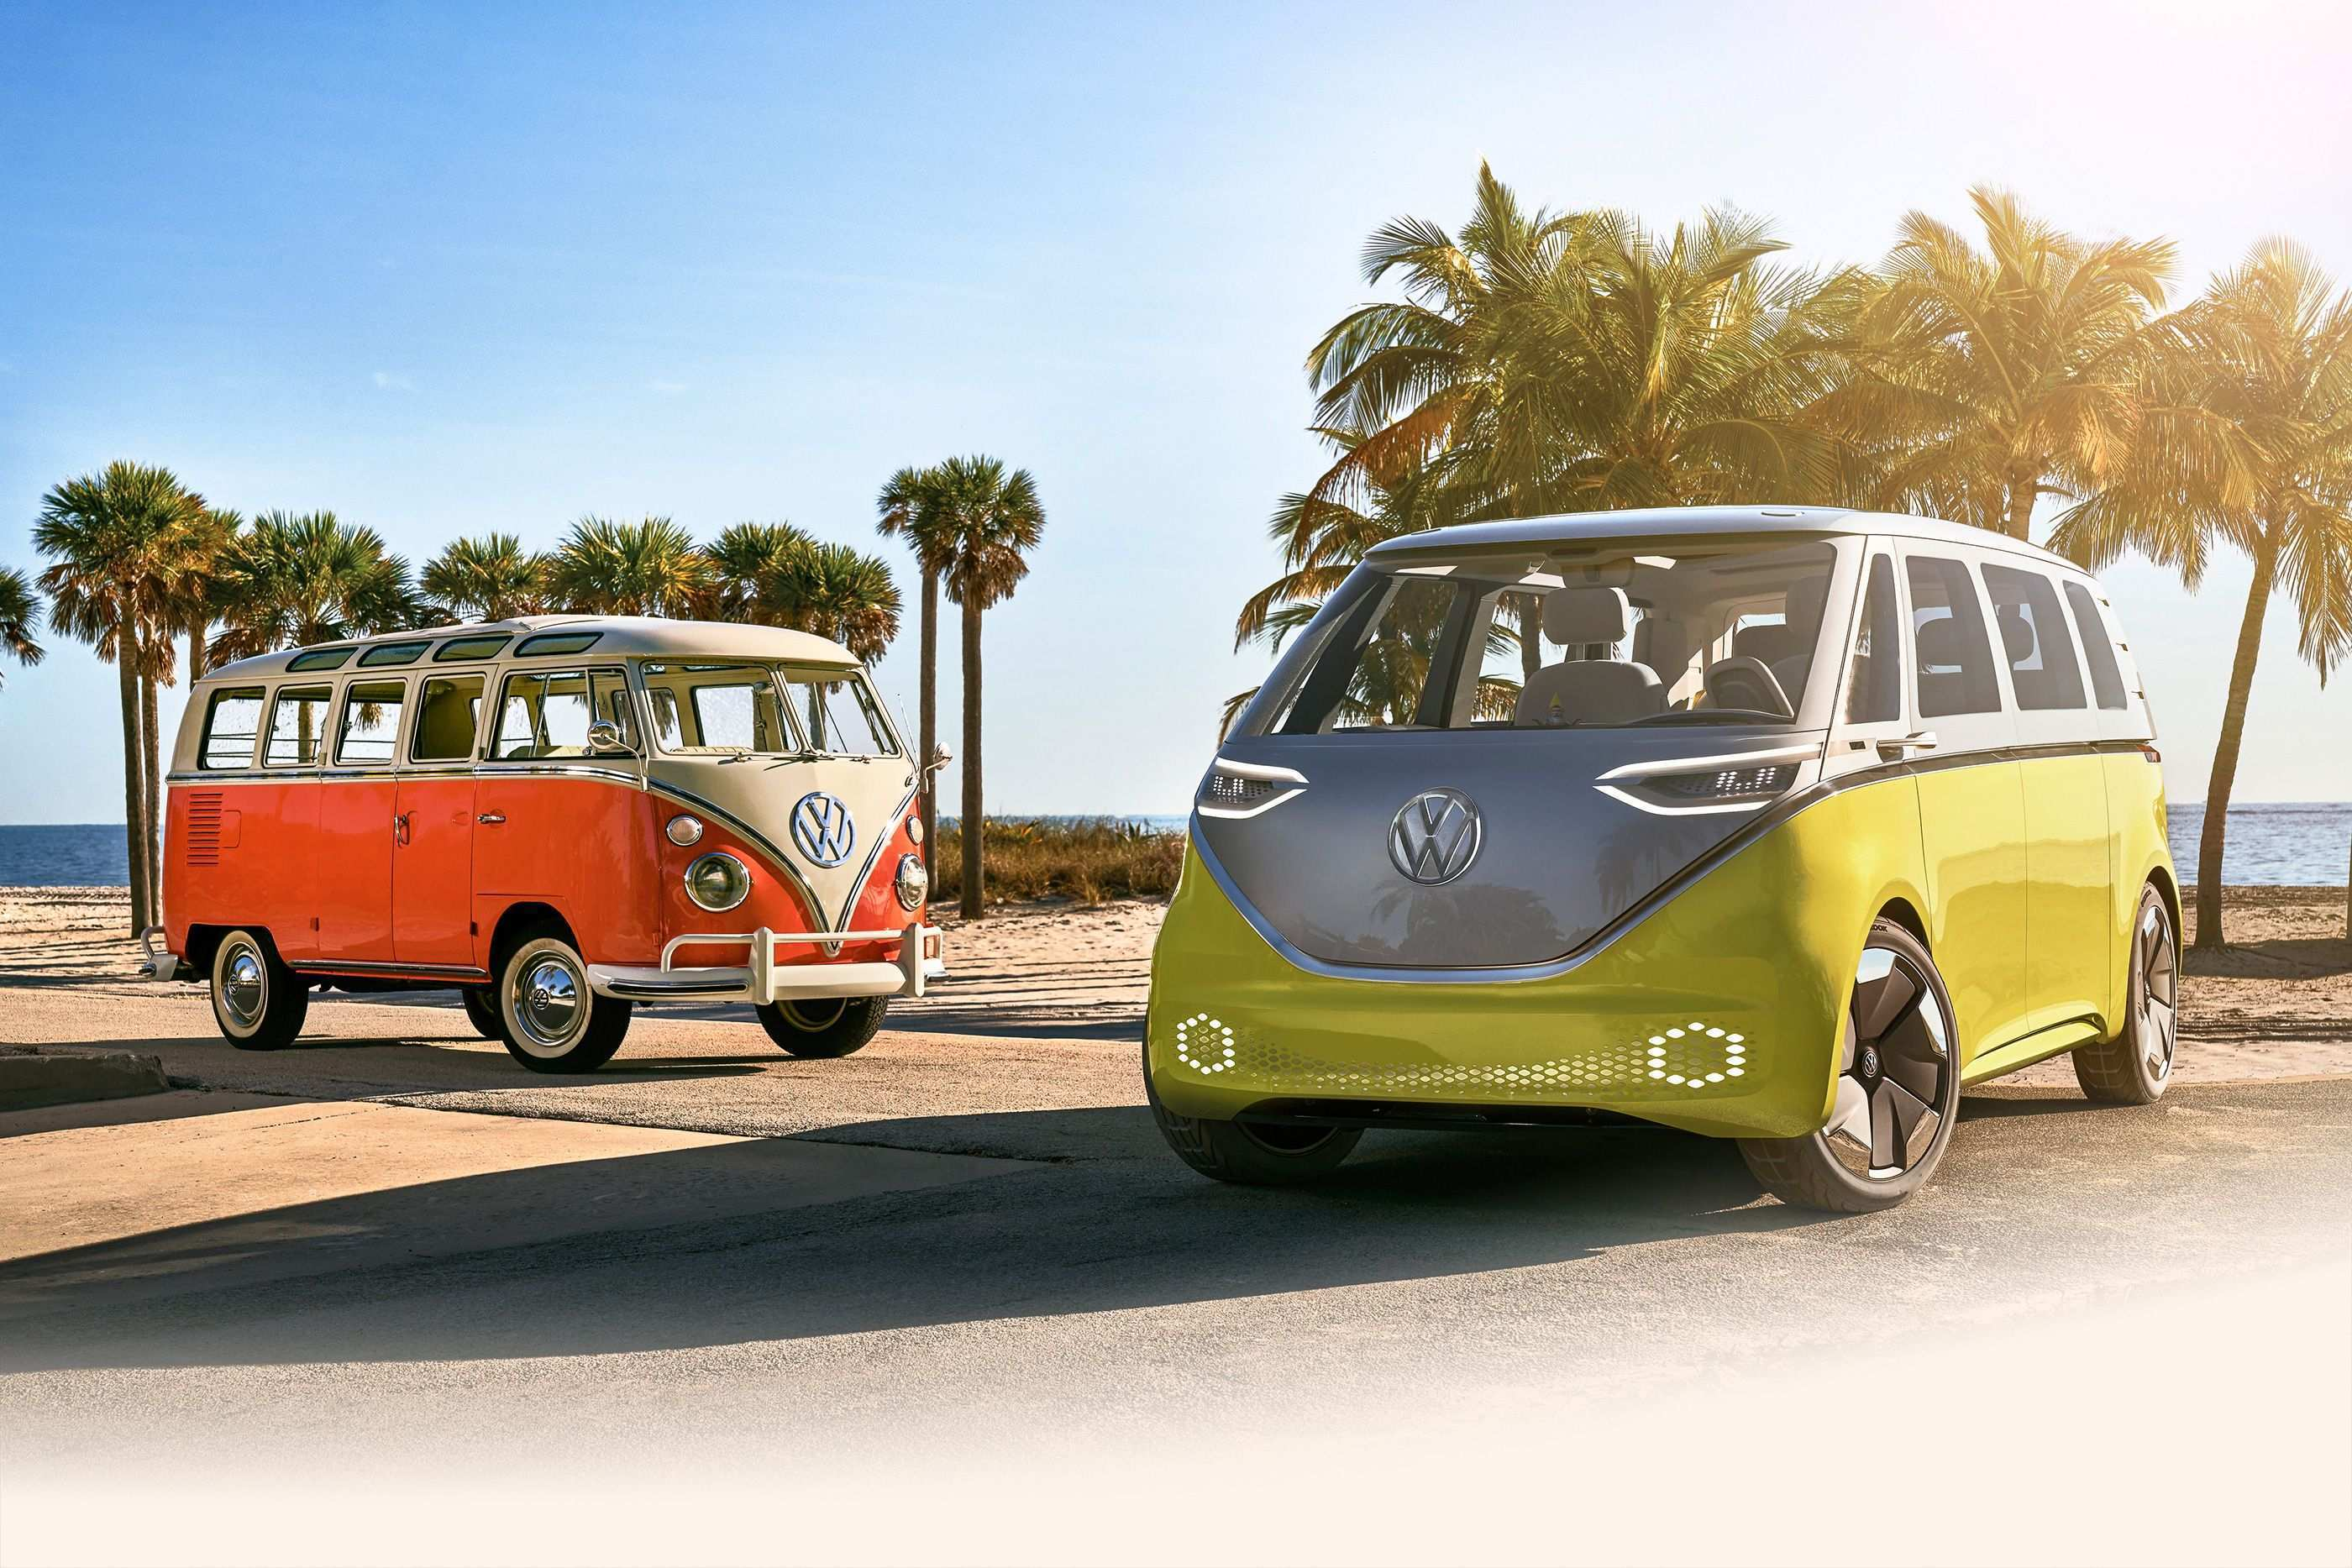 78 Great 2020 Vw Minibus Ratings for 2020 Vw Minibus